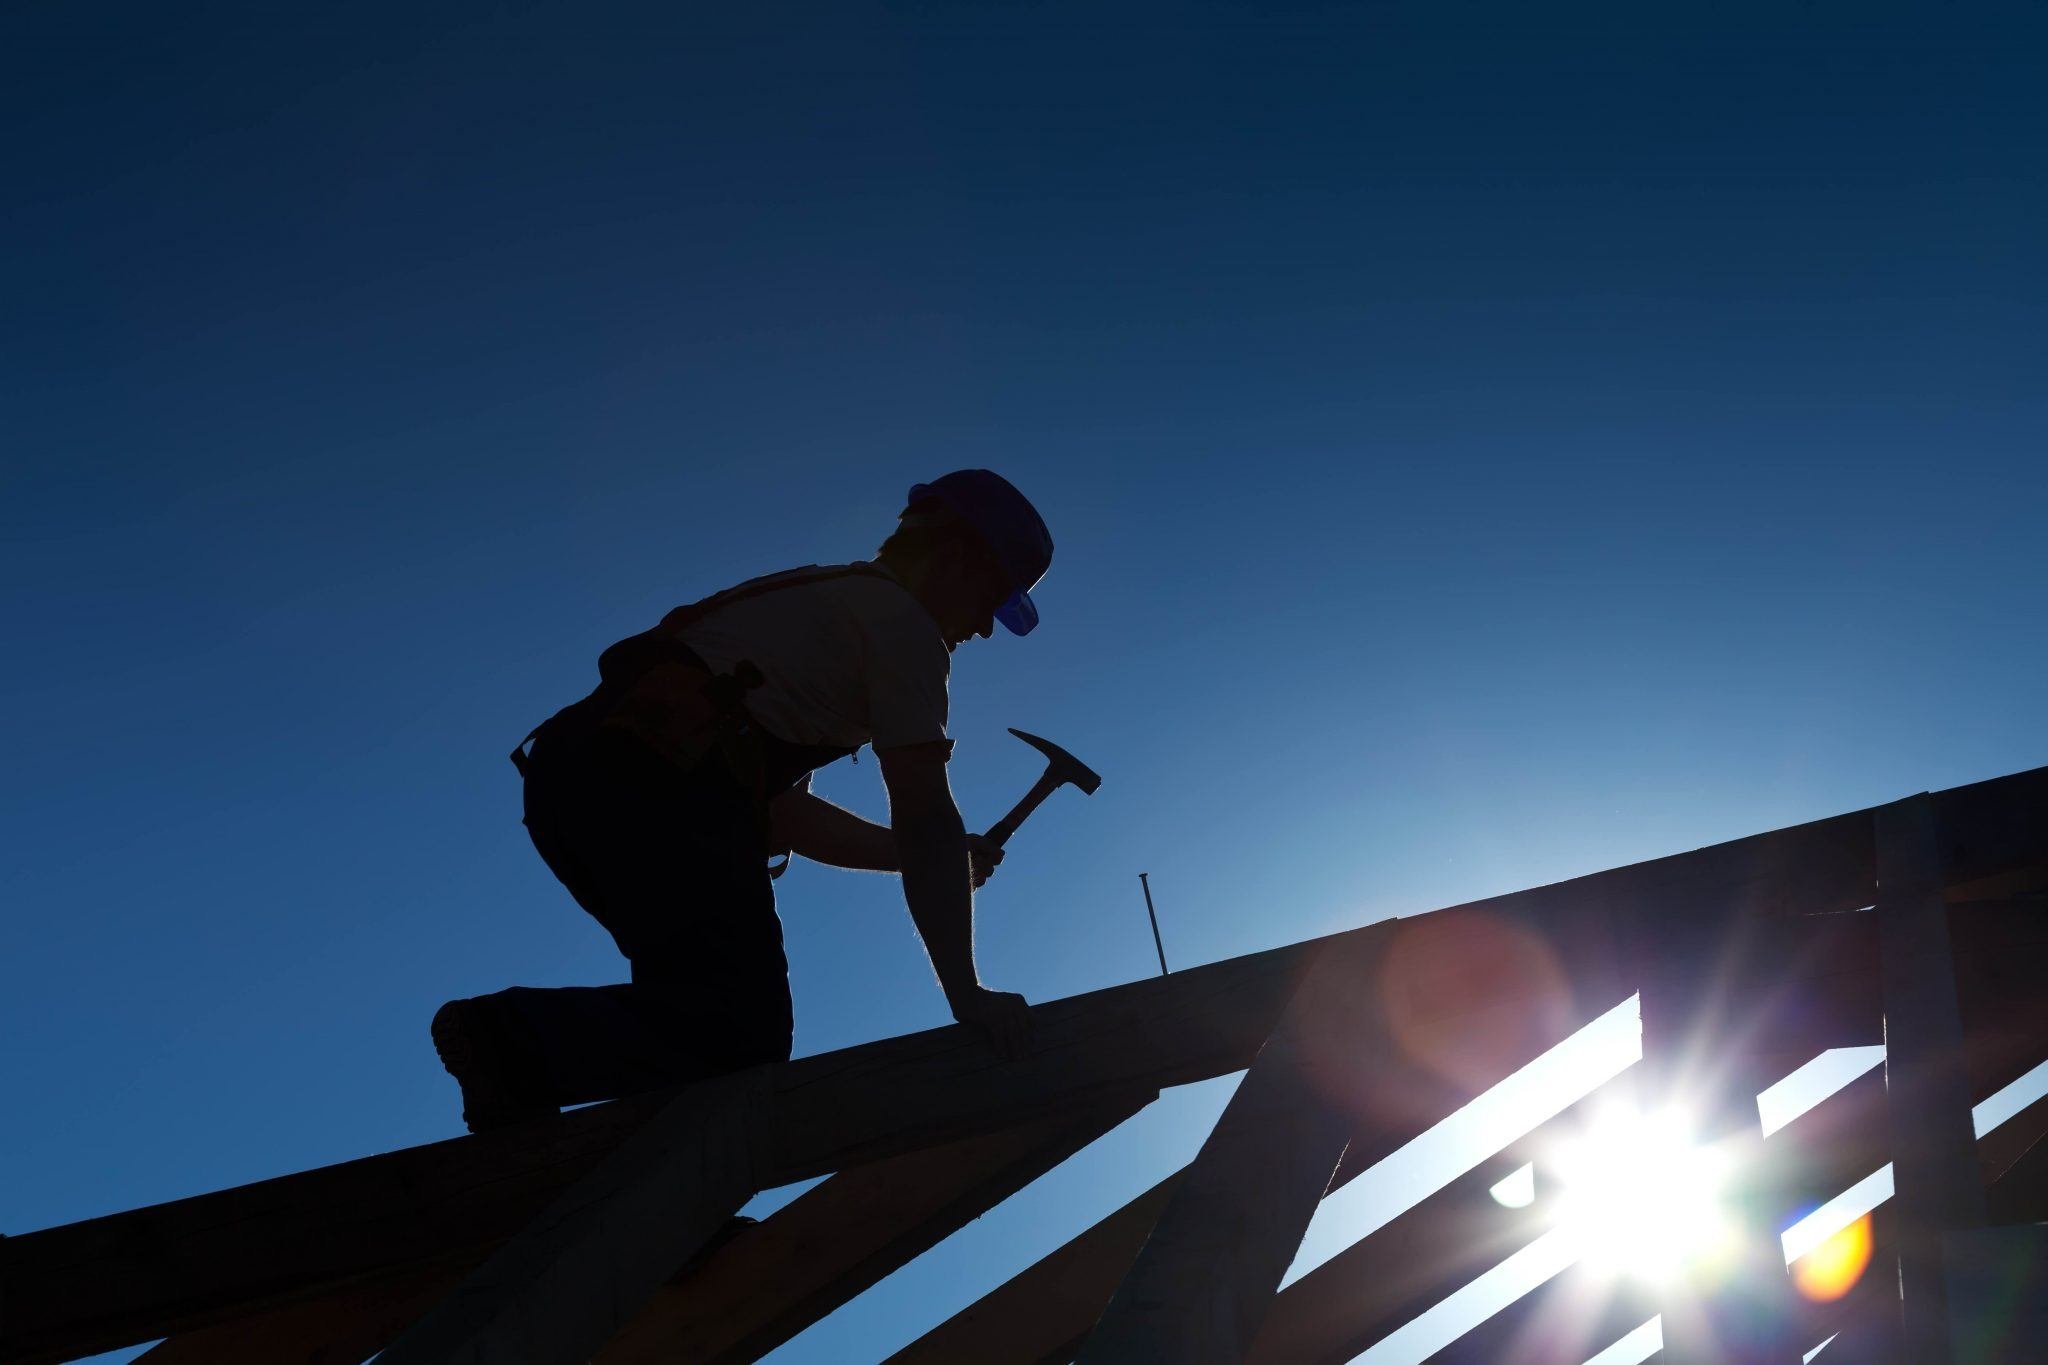 August 2019: Roofing Industry News